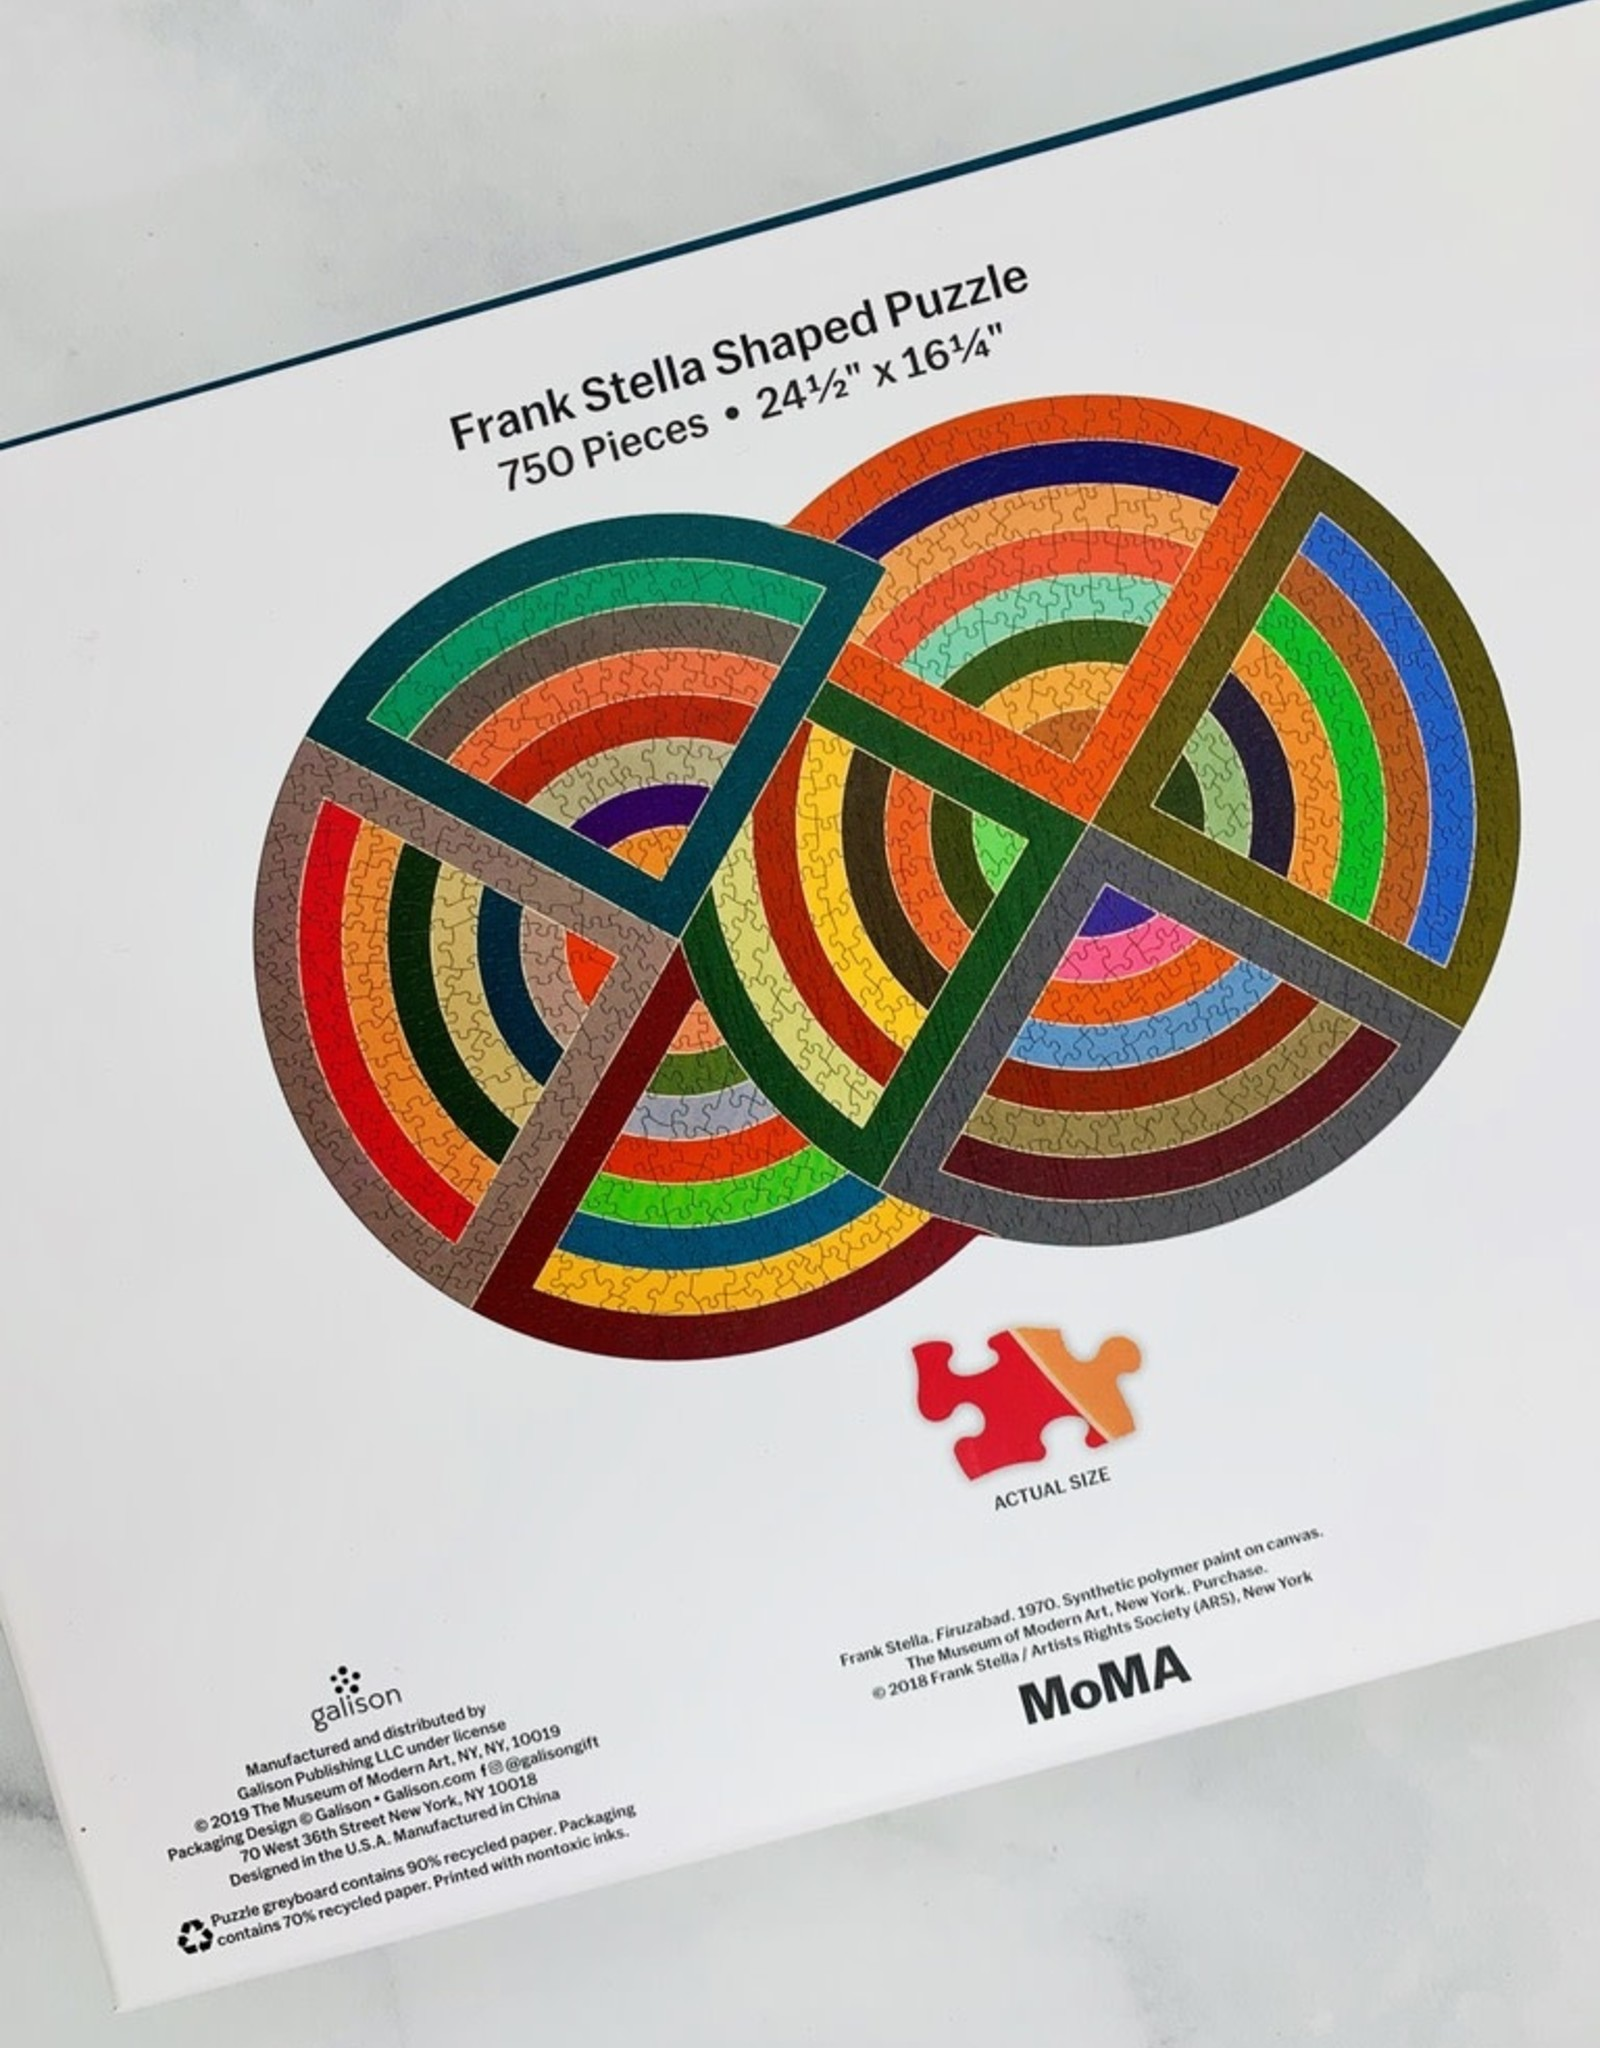 MoMA Frank Stella 750 Piece Shaped Jigsaw Puzzle